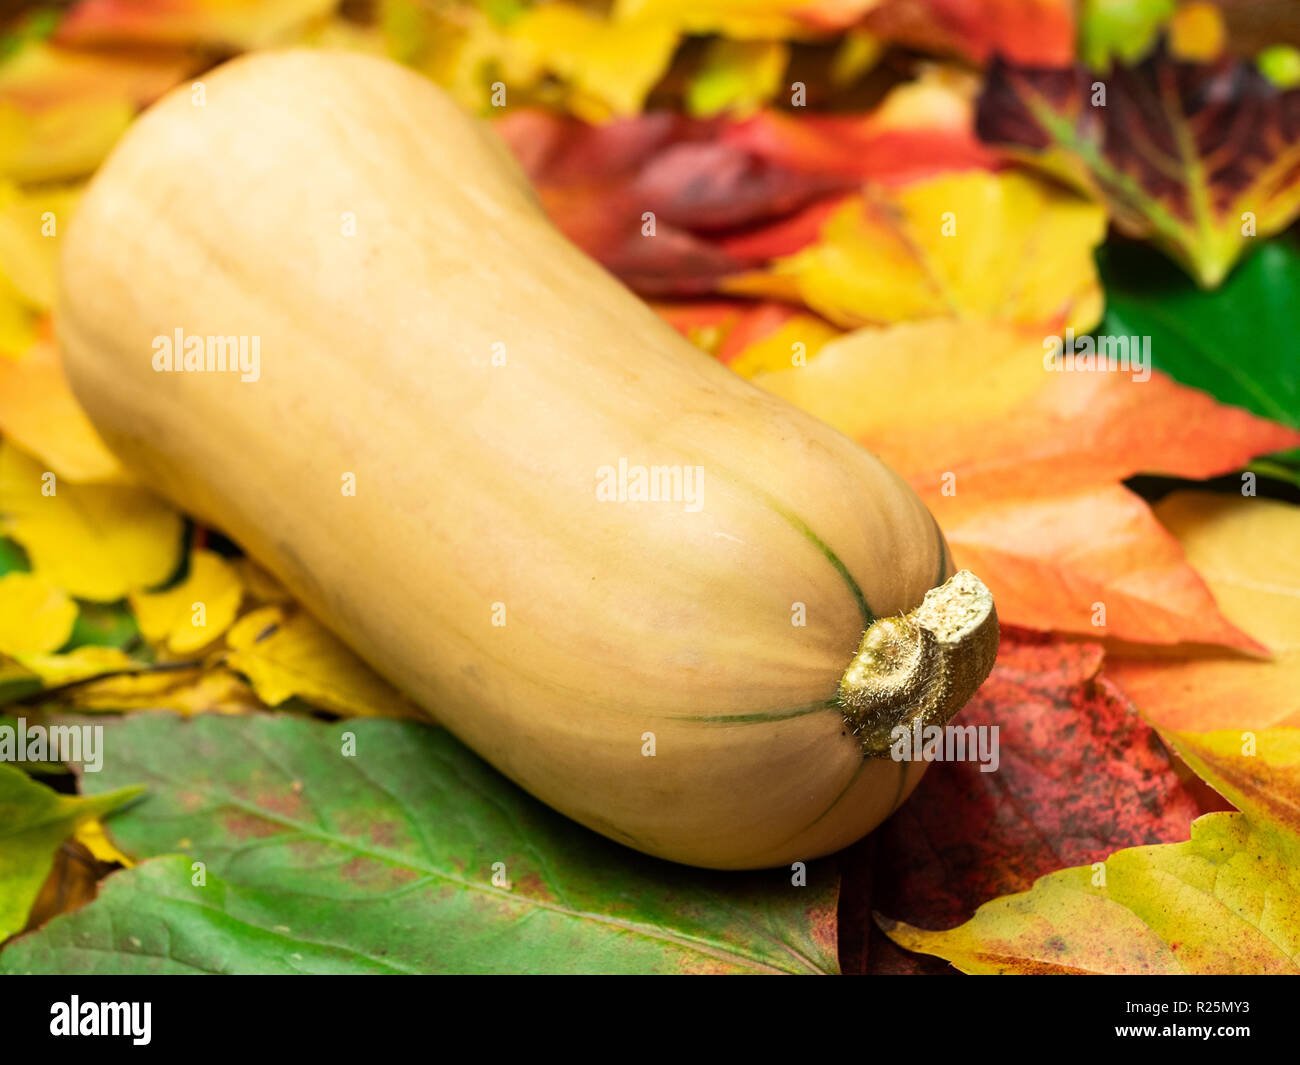 A butternut squash (seasonal vegetable) is placed on autumn leaves in green, red, orange and yellow colours. Close-up. Stock Photo